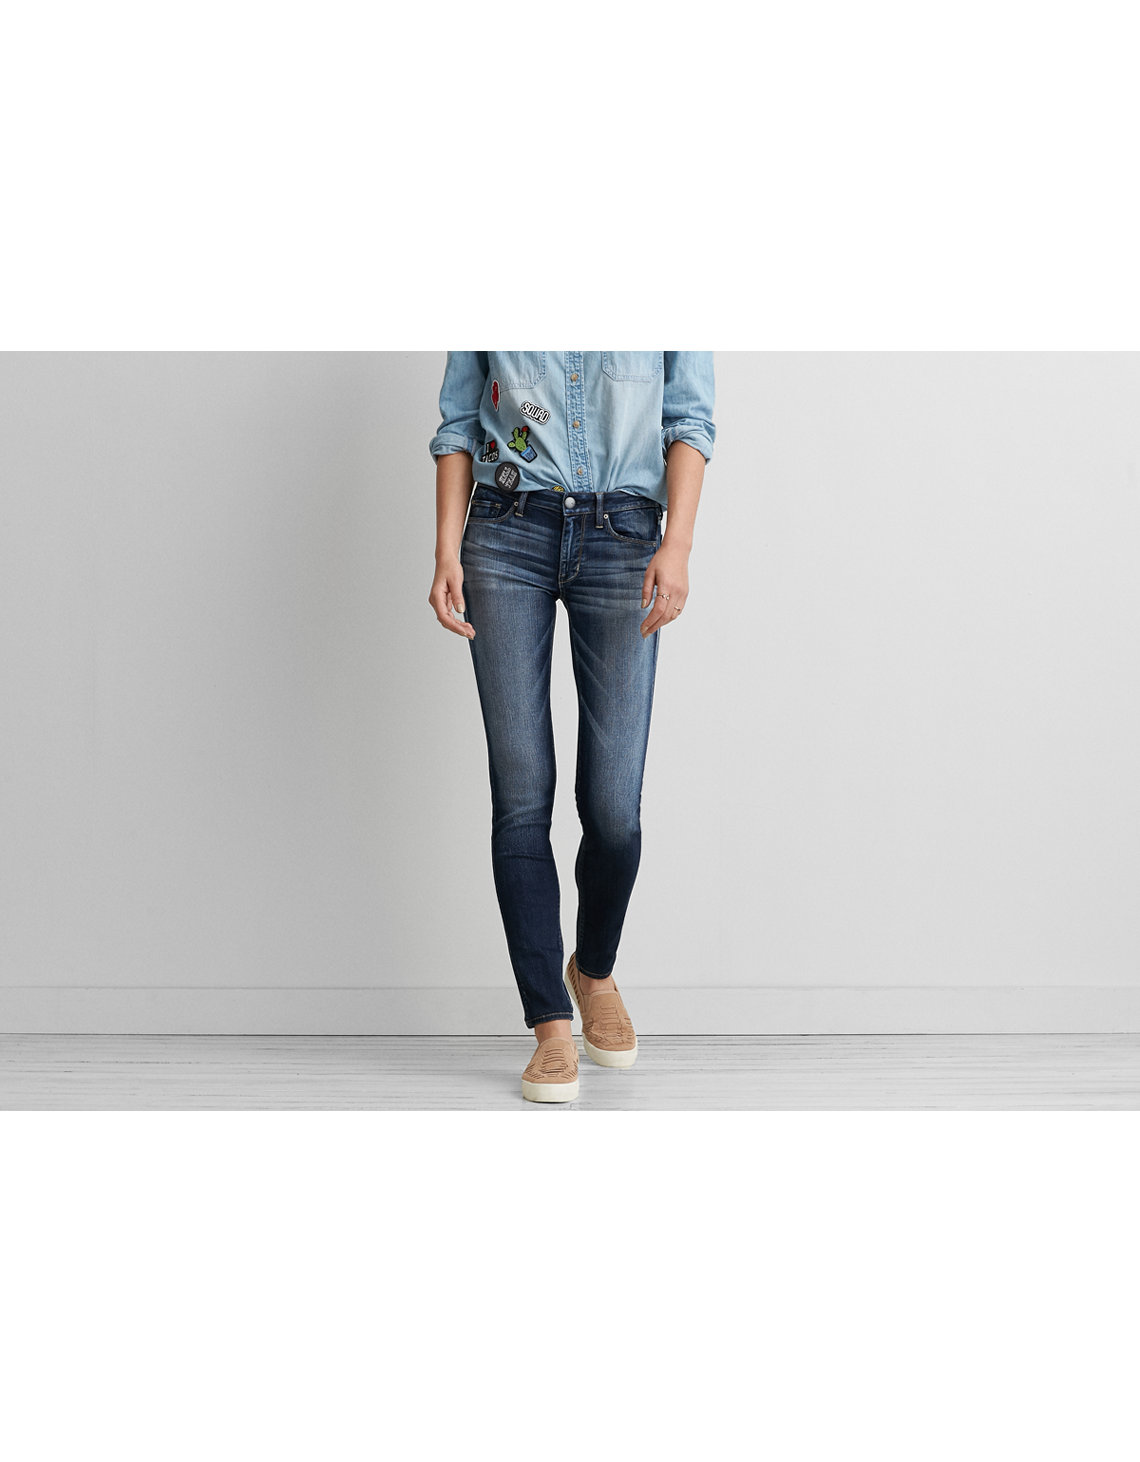 AEO Denim X Skinny Jean . - AEO Denim X Skinny Jean, Rubbed Ink American Eagle Outfitters